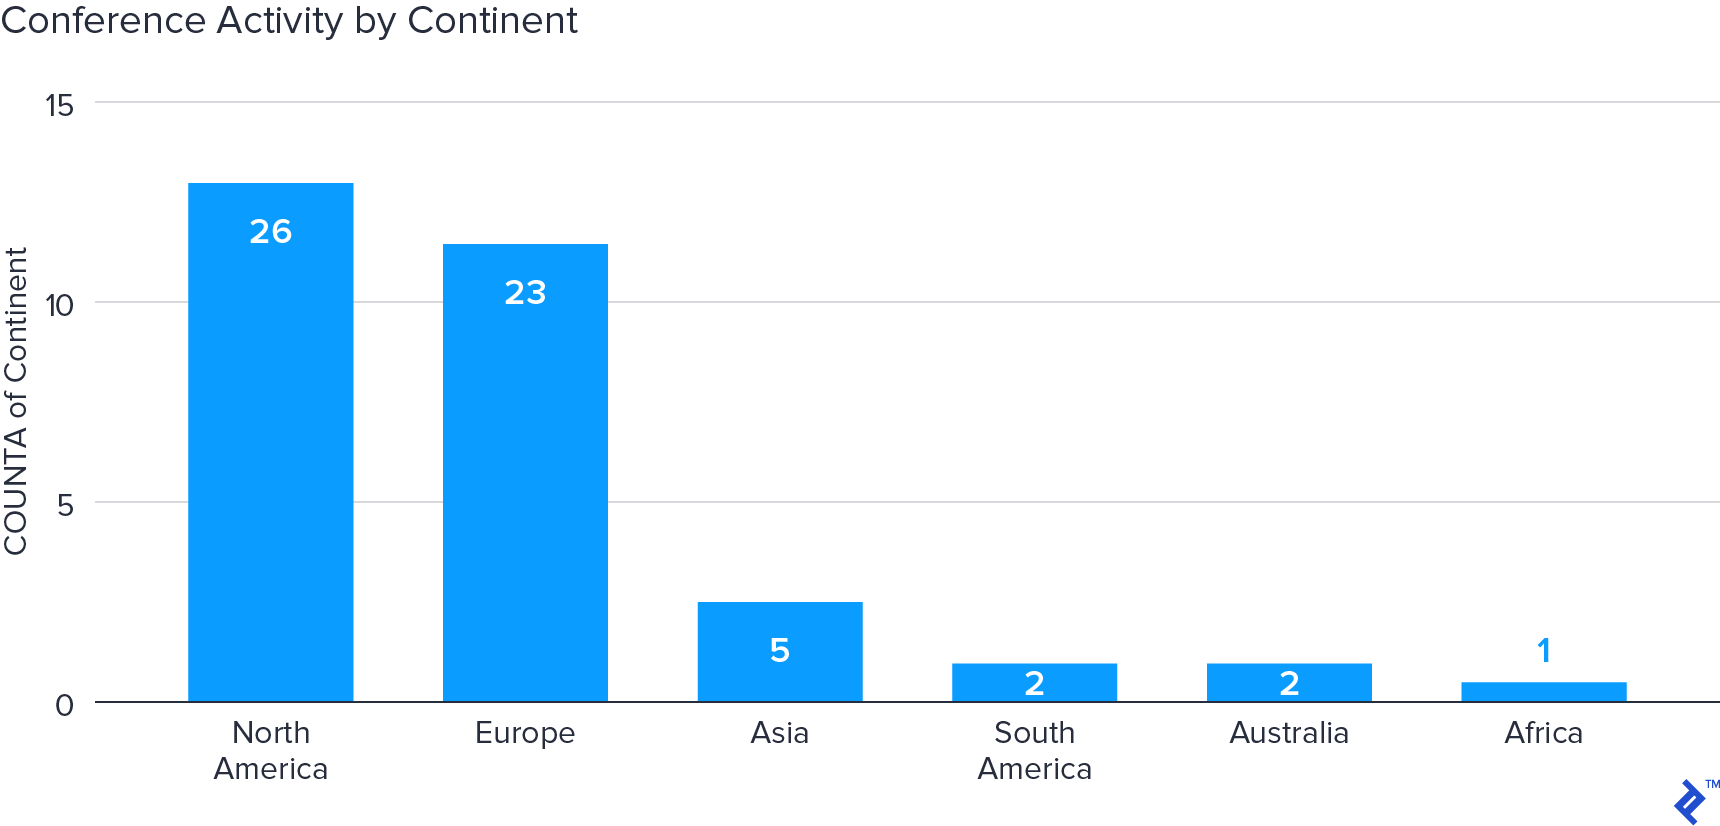 Chart of conference activity by continent